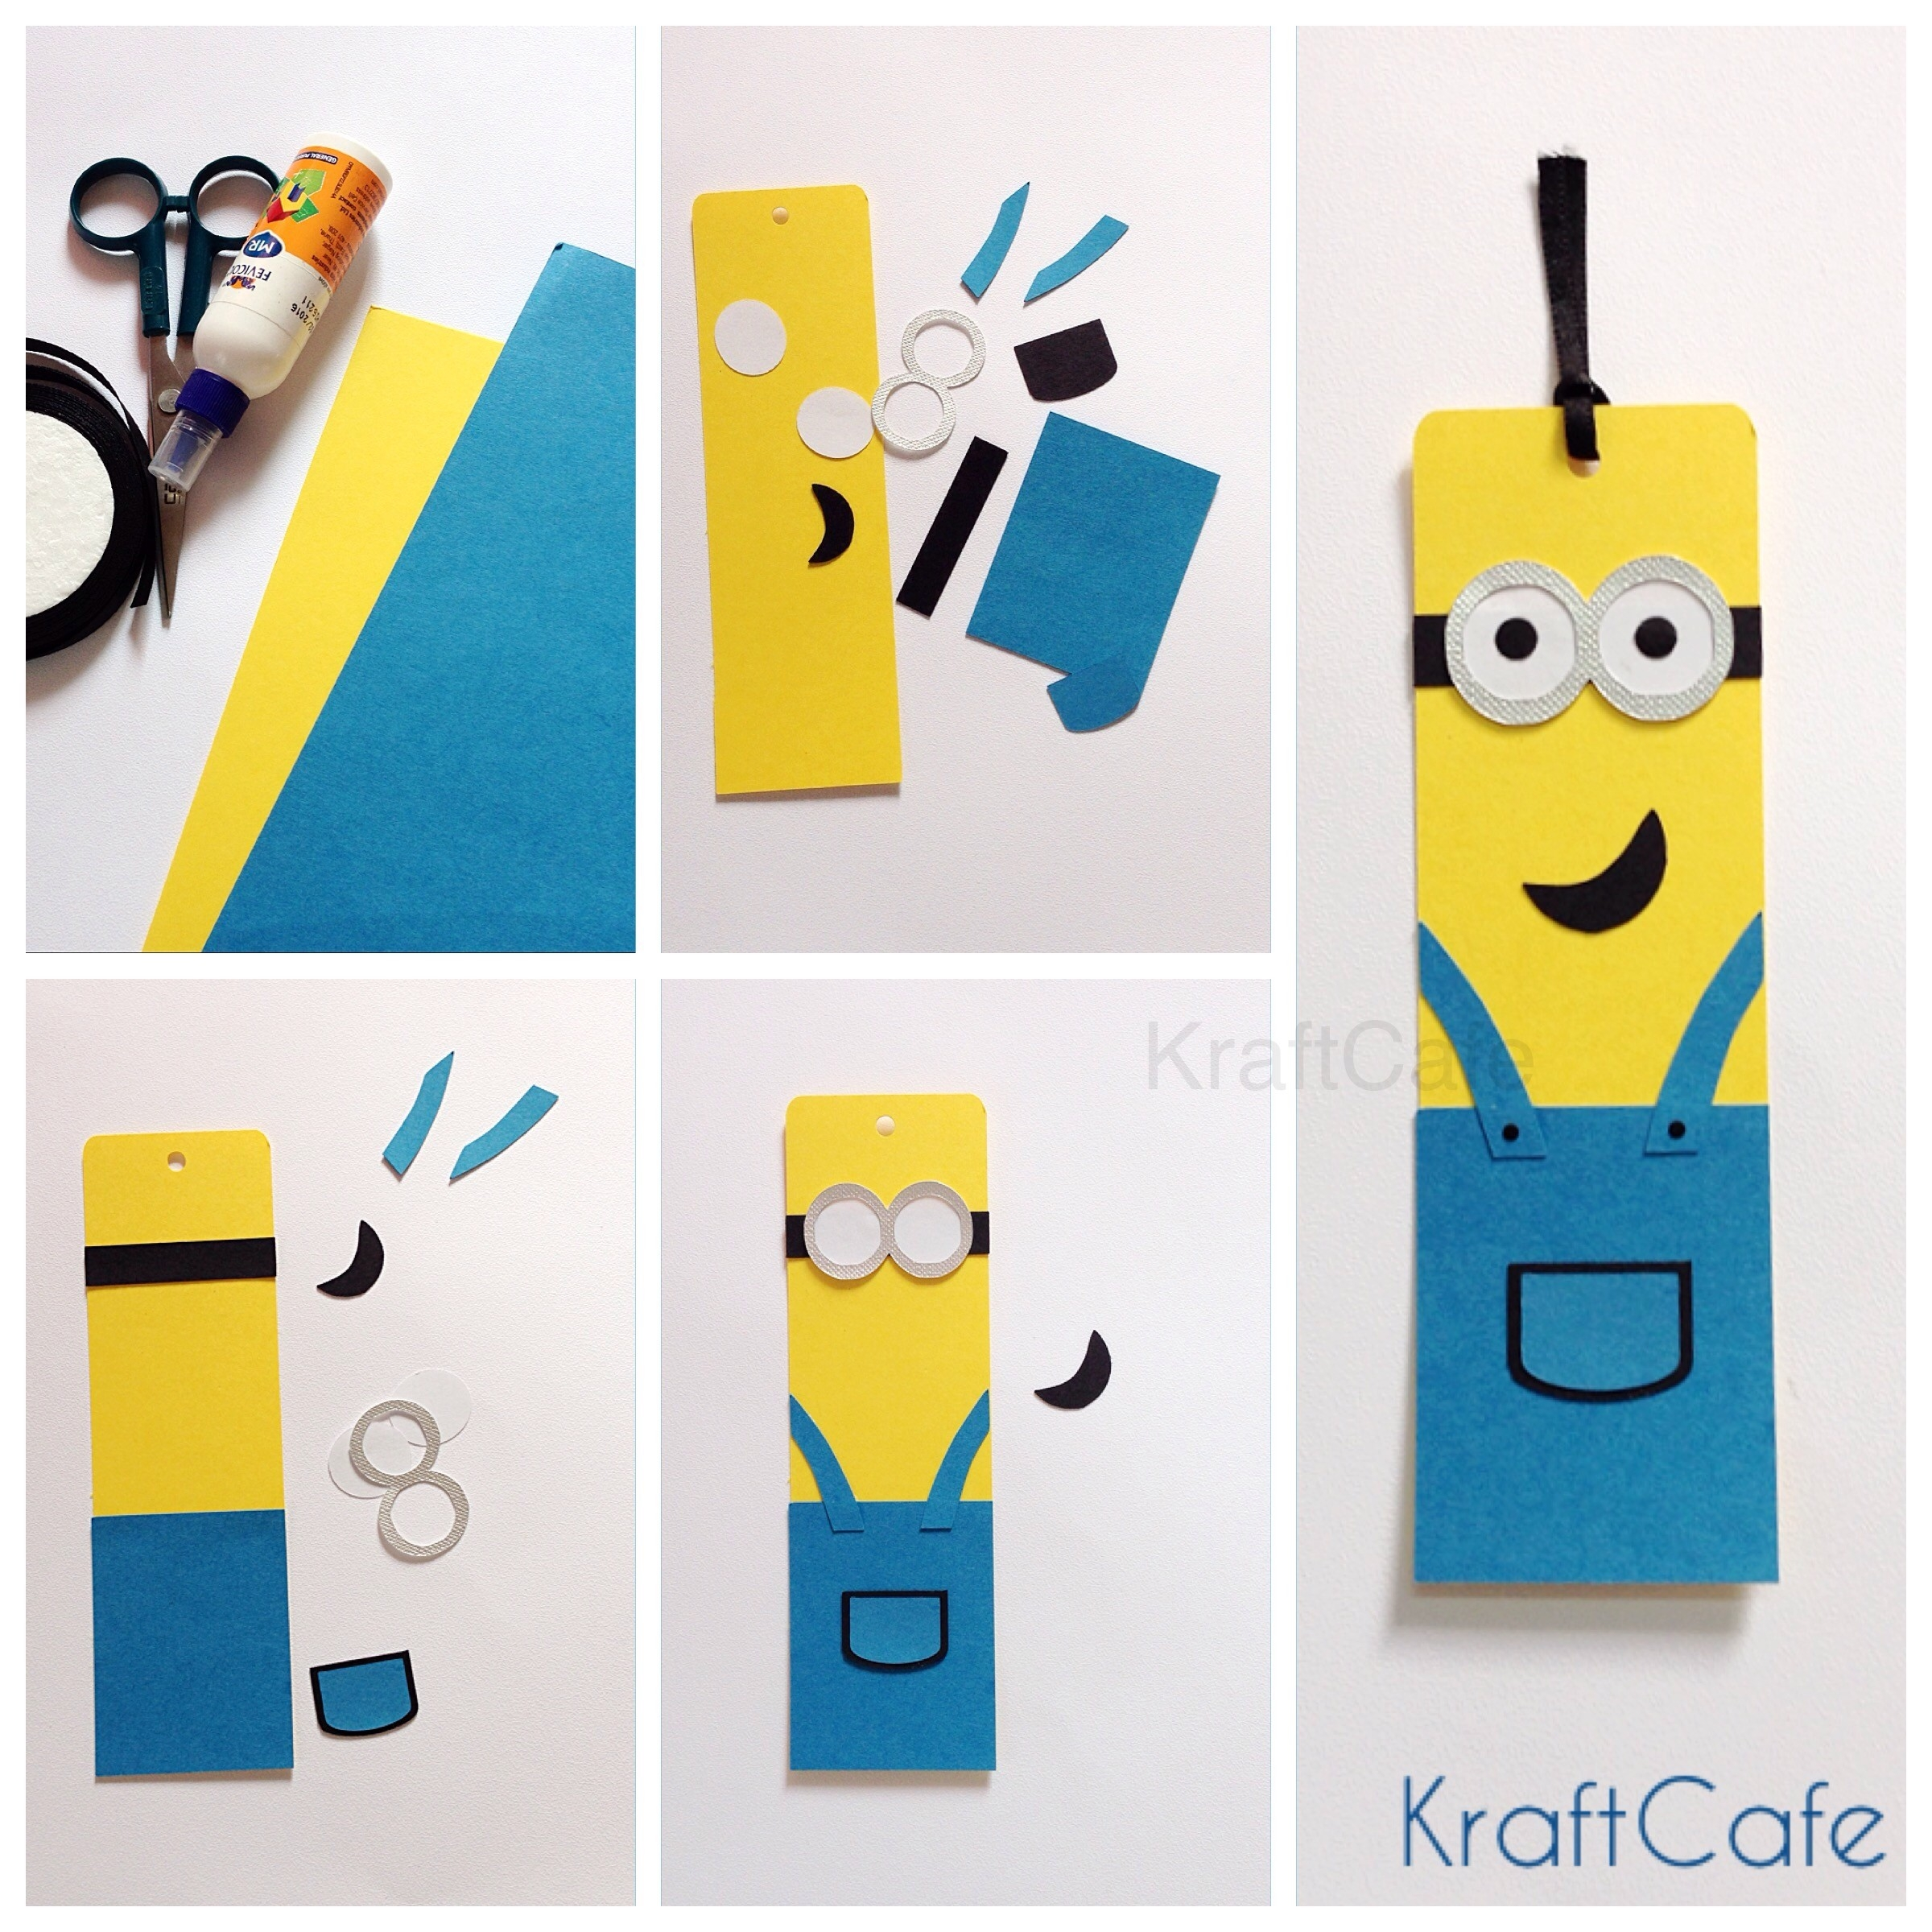 Handmade Bookmarks – Varnam Art Class with regard to How To Make Cute Handmade Bookmarks Design 27900